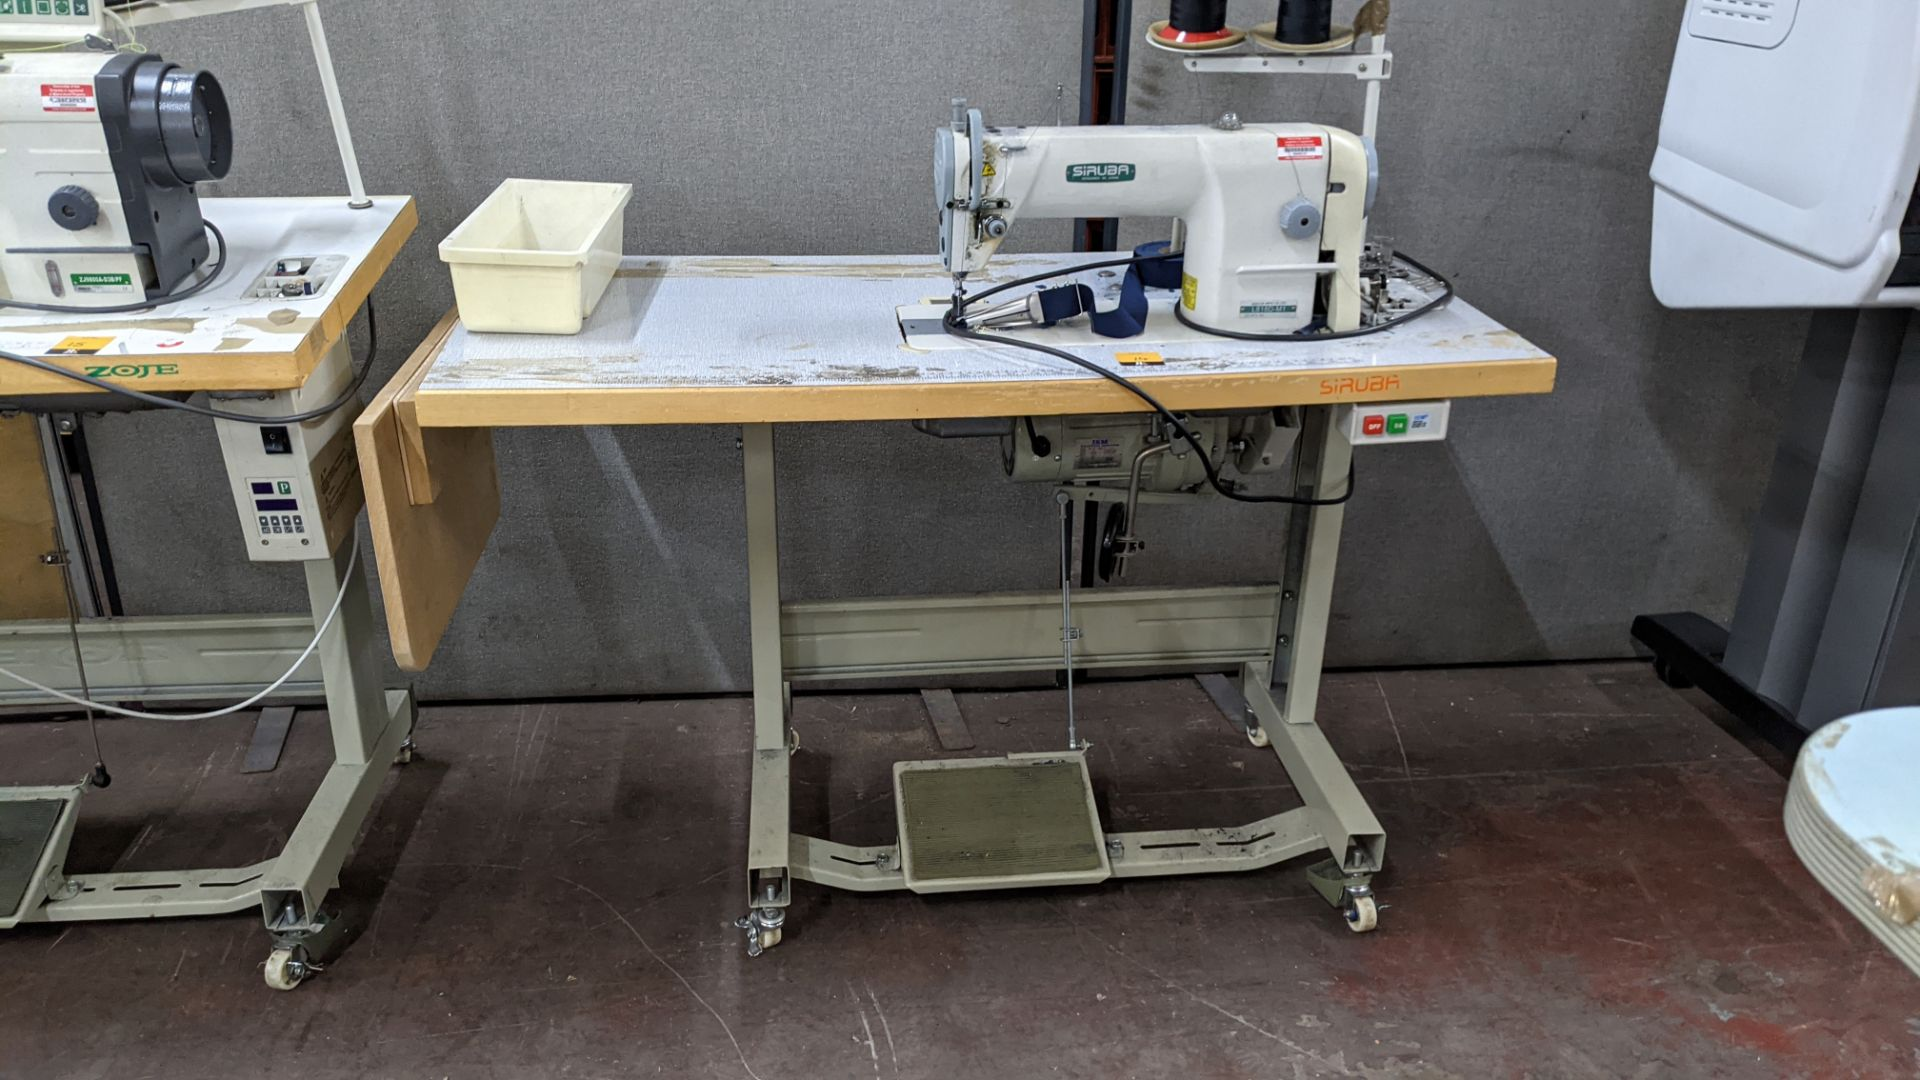 Siruba sewing machine, model L818D-M1, with edge band guide - Image 3 of 13